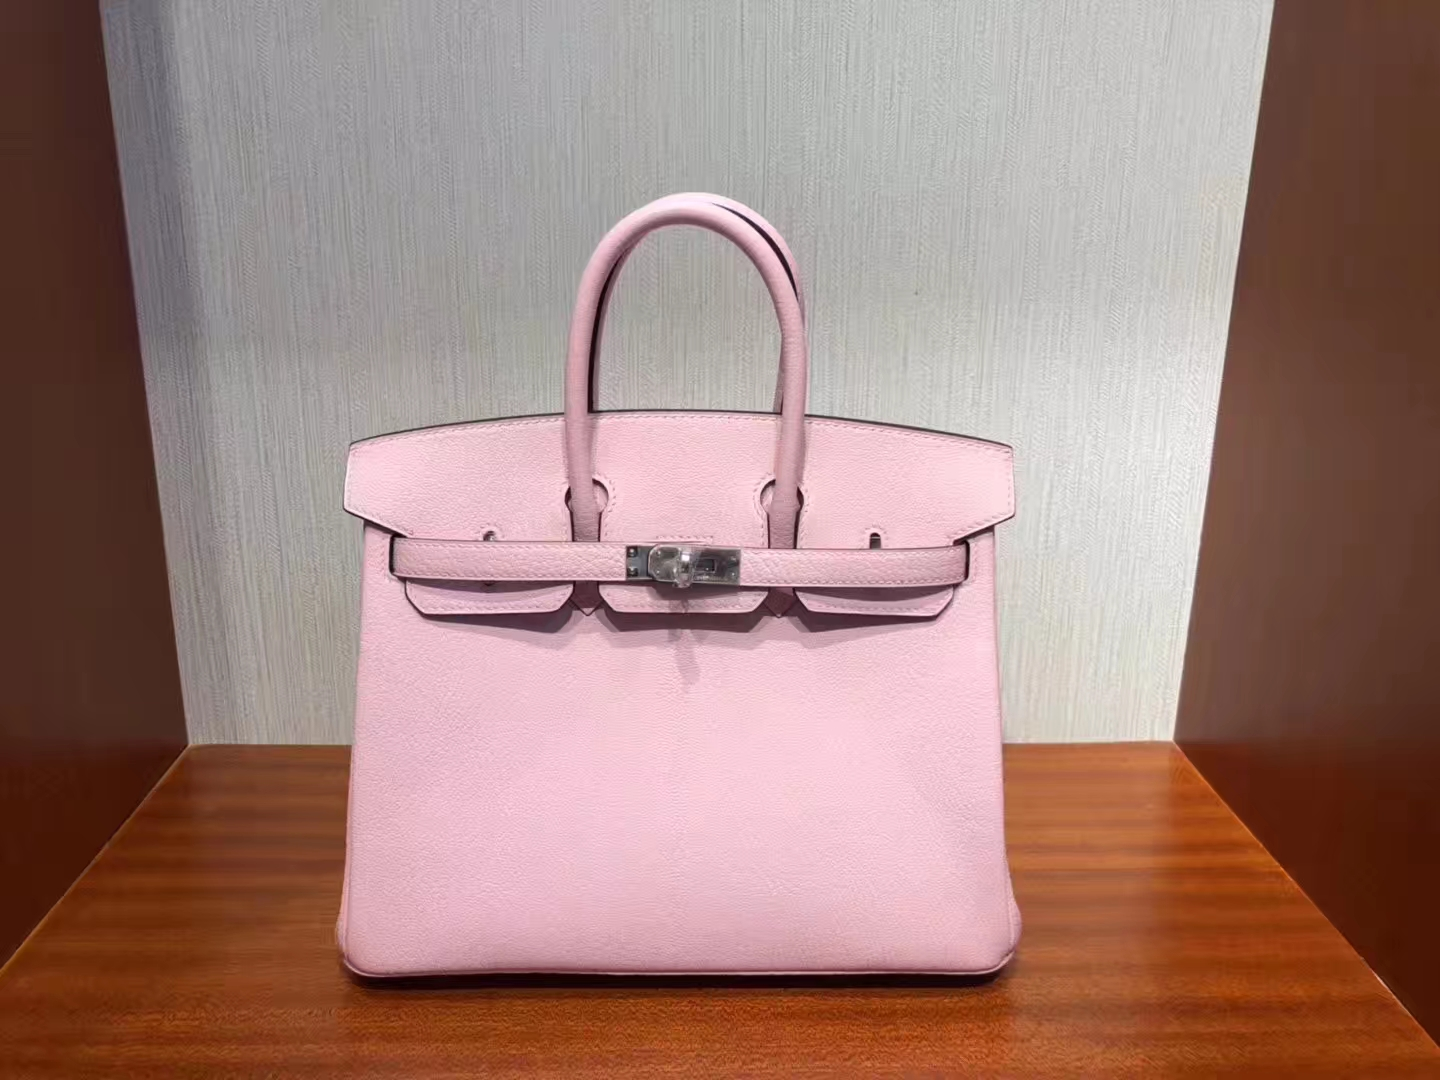 Discount Hermes Chevre Leather Birkin25CM Bag in 1Q Rose Confetti Silver Hardware